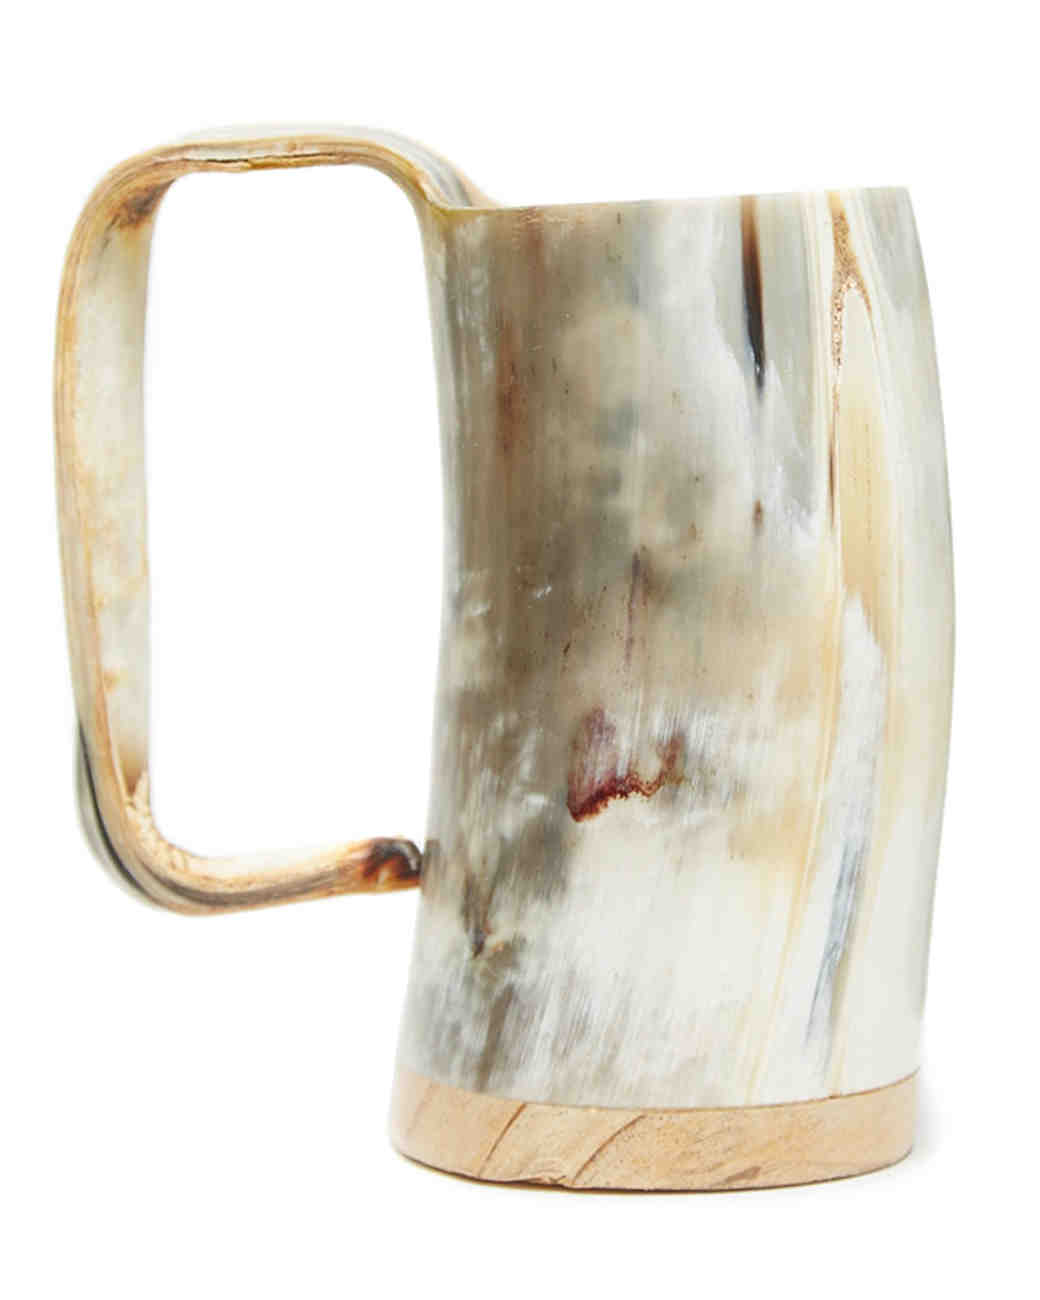 fathers-gift-guide-food-horn-cup-0515.jpg